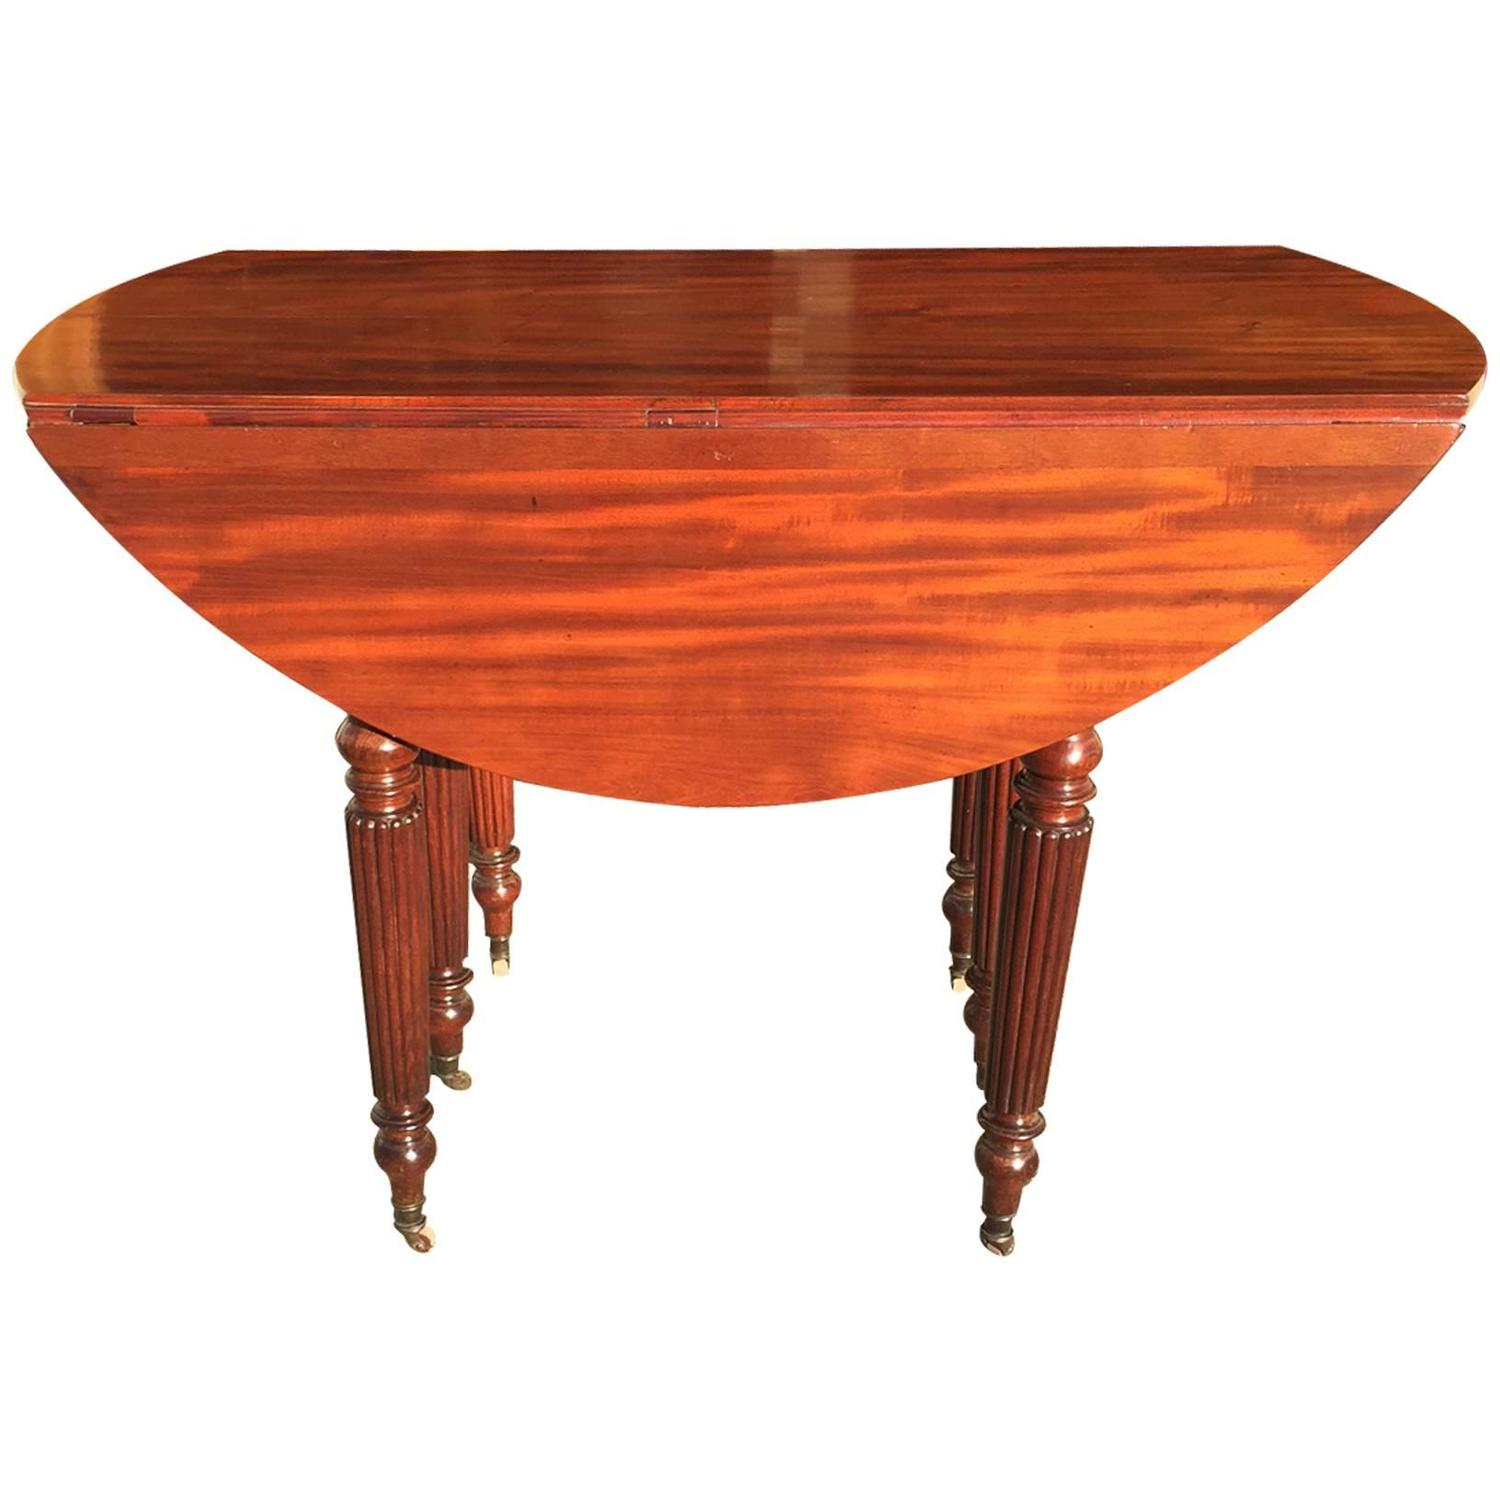 Mid 19th Century French Mahogany Drop Leaf Extending Dining Table